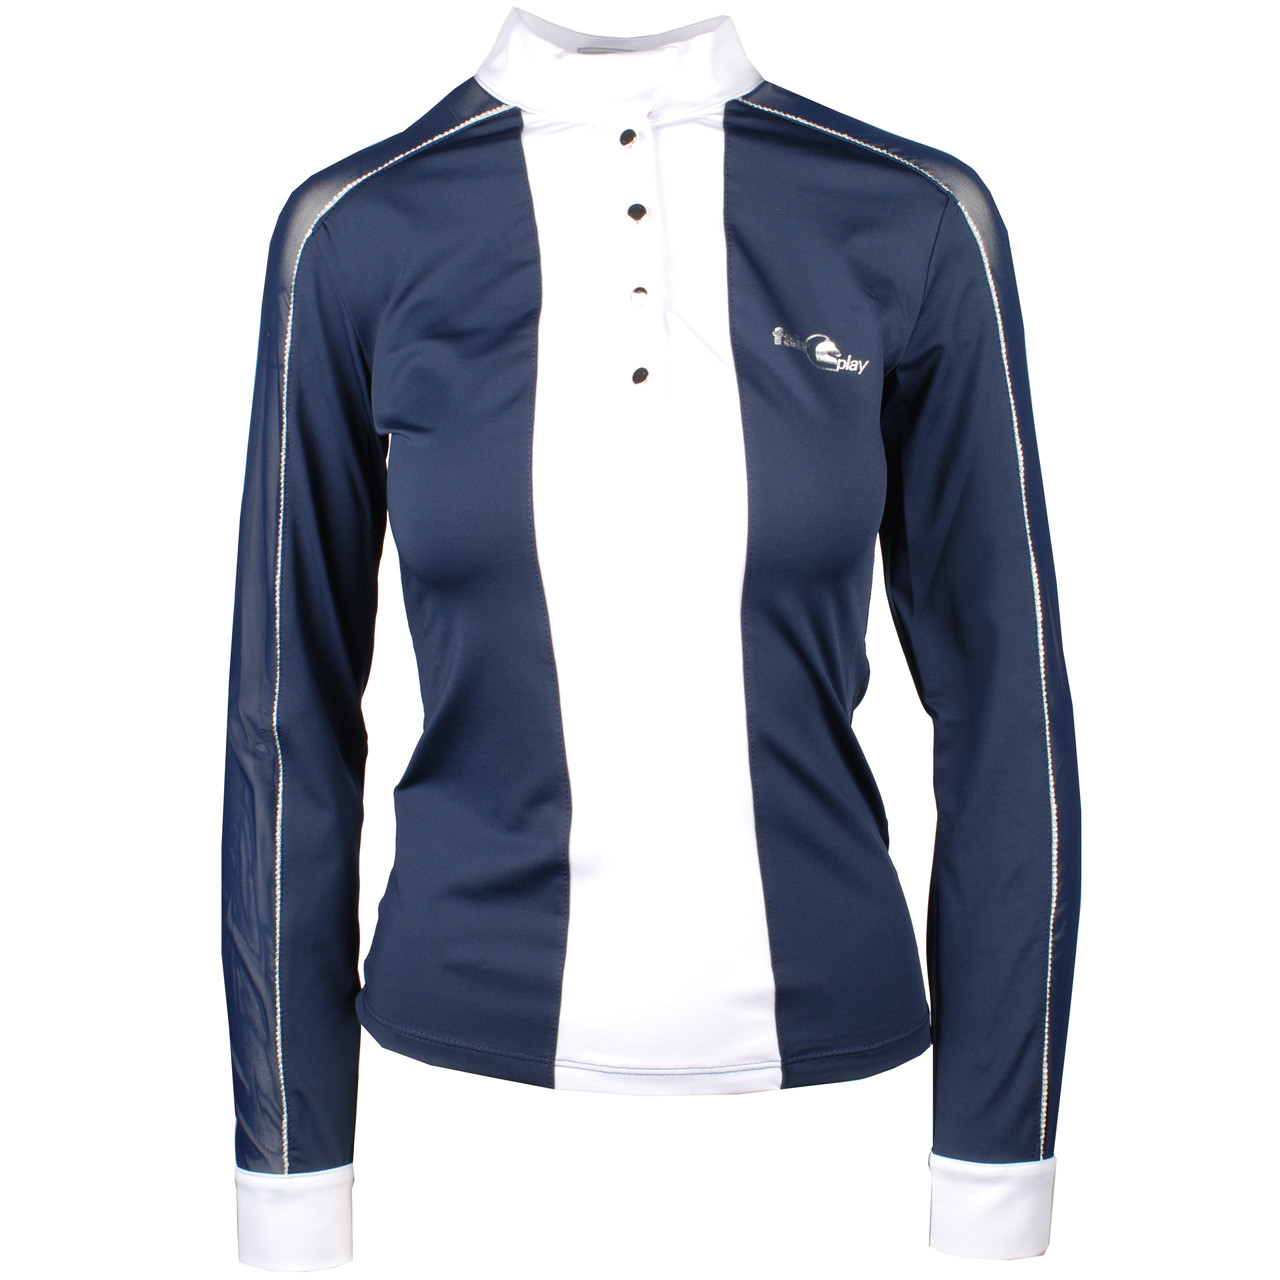 Fair Play Claire lm wedstrijdshirt donkerblauw maat:38